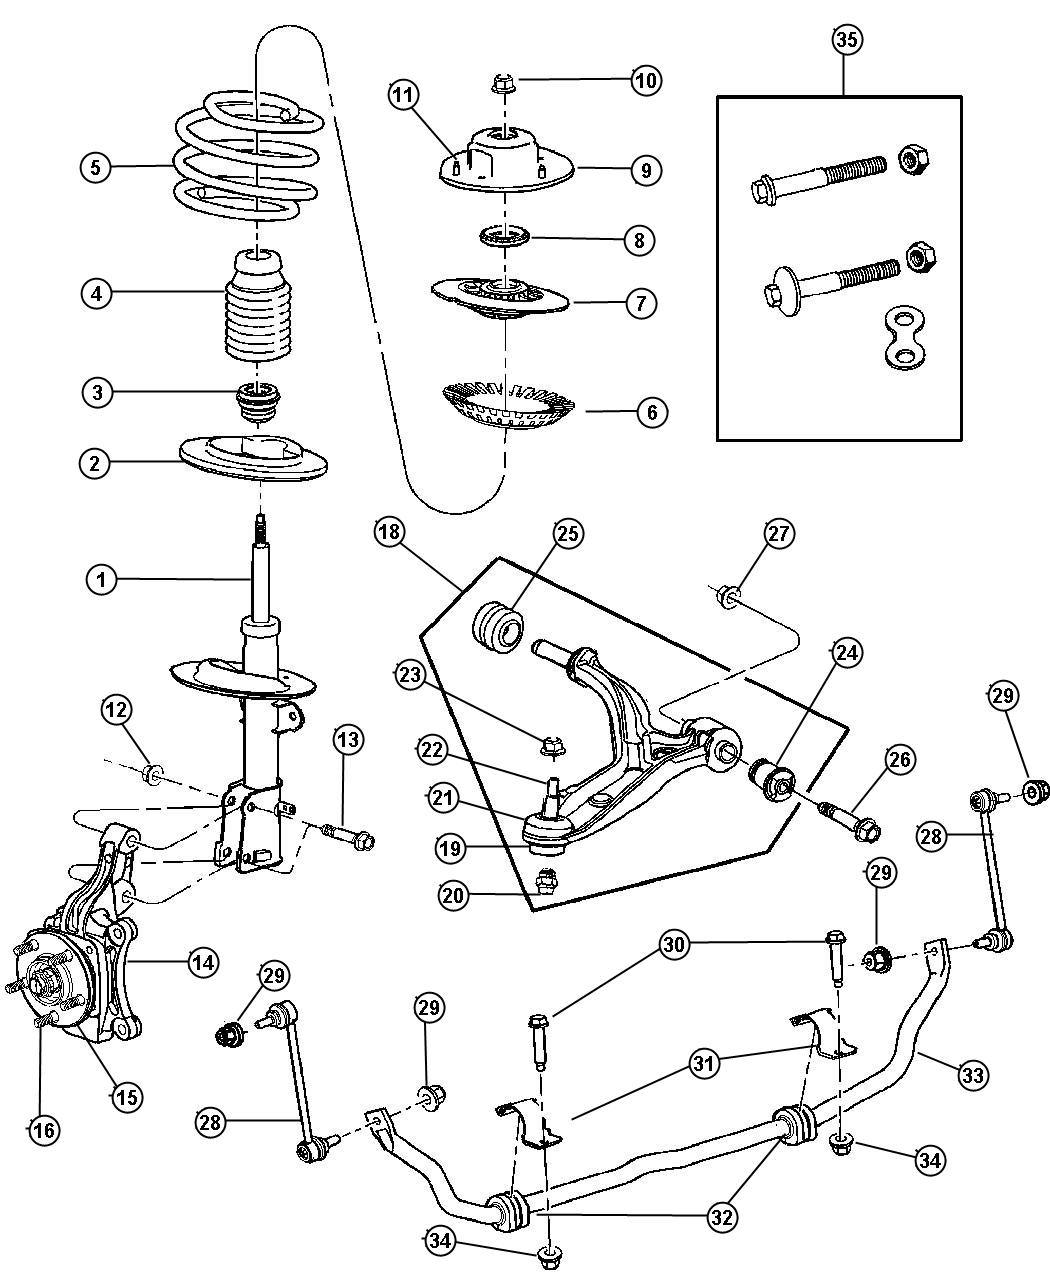 grand caravan fuse diagram best wiring library 2005 Chrysler Town and Country Fuse Box 1999 chrysler town and country fuse diagram free download wiring dodge parts diagram online dodge caravan